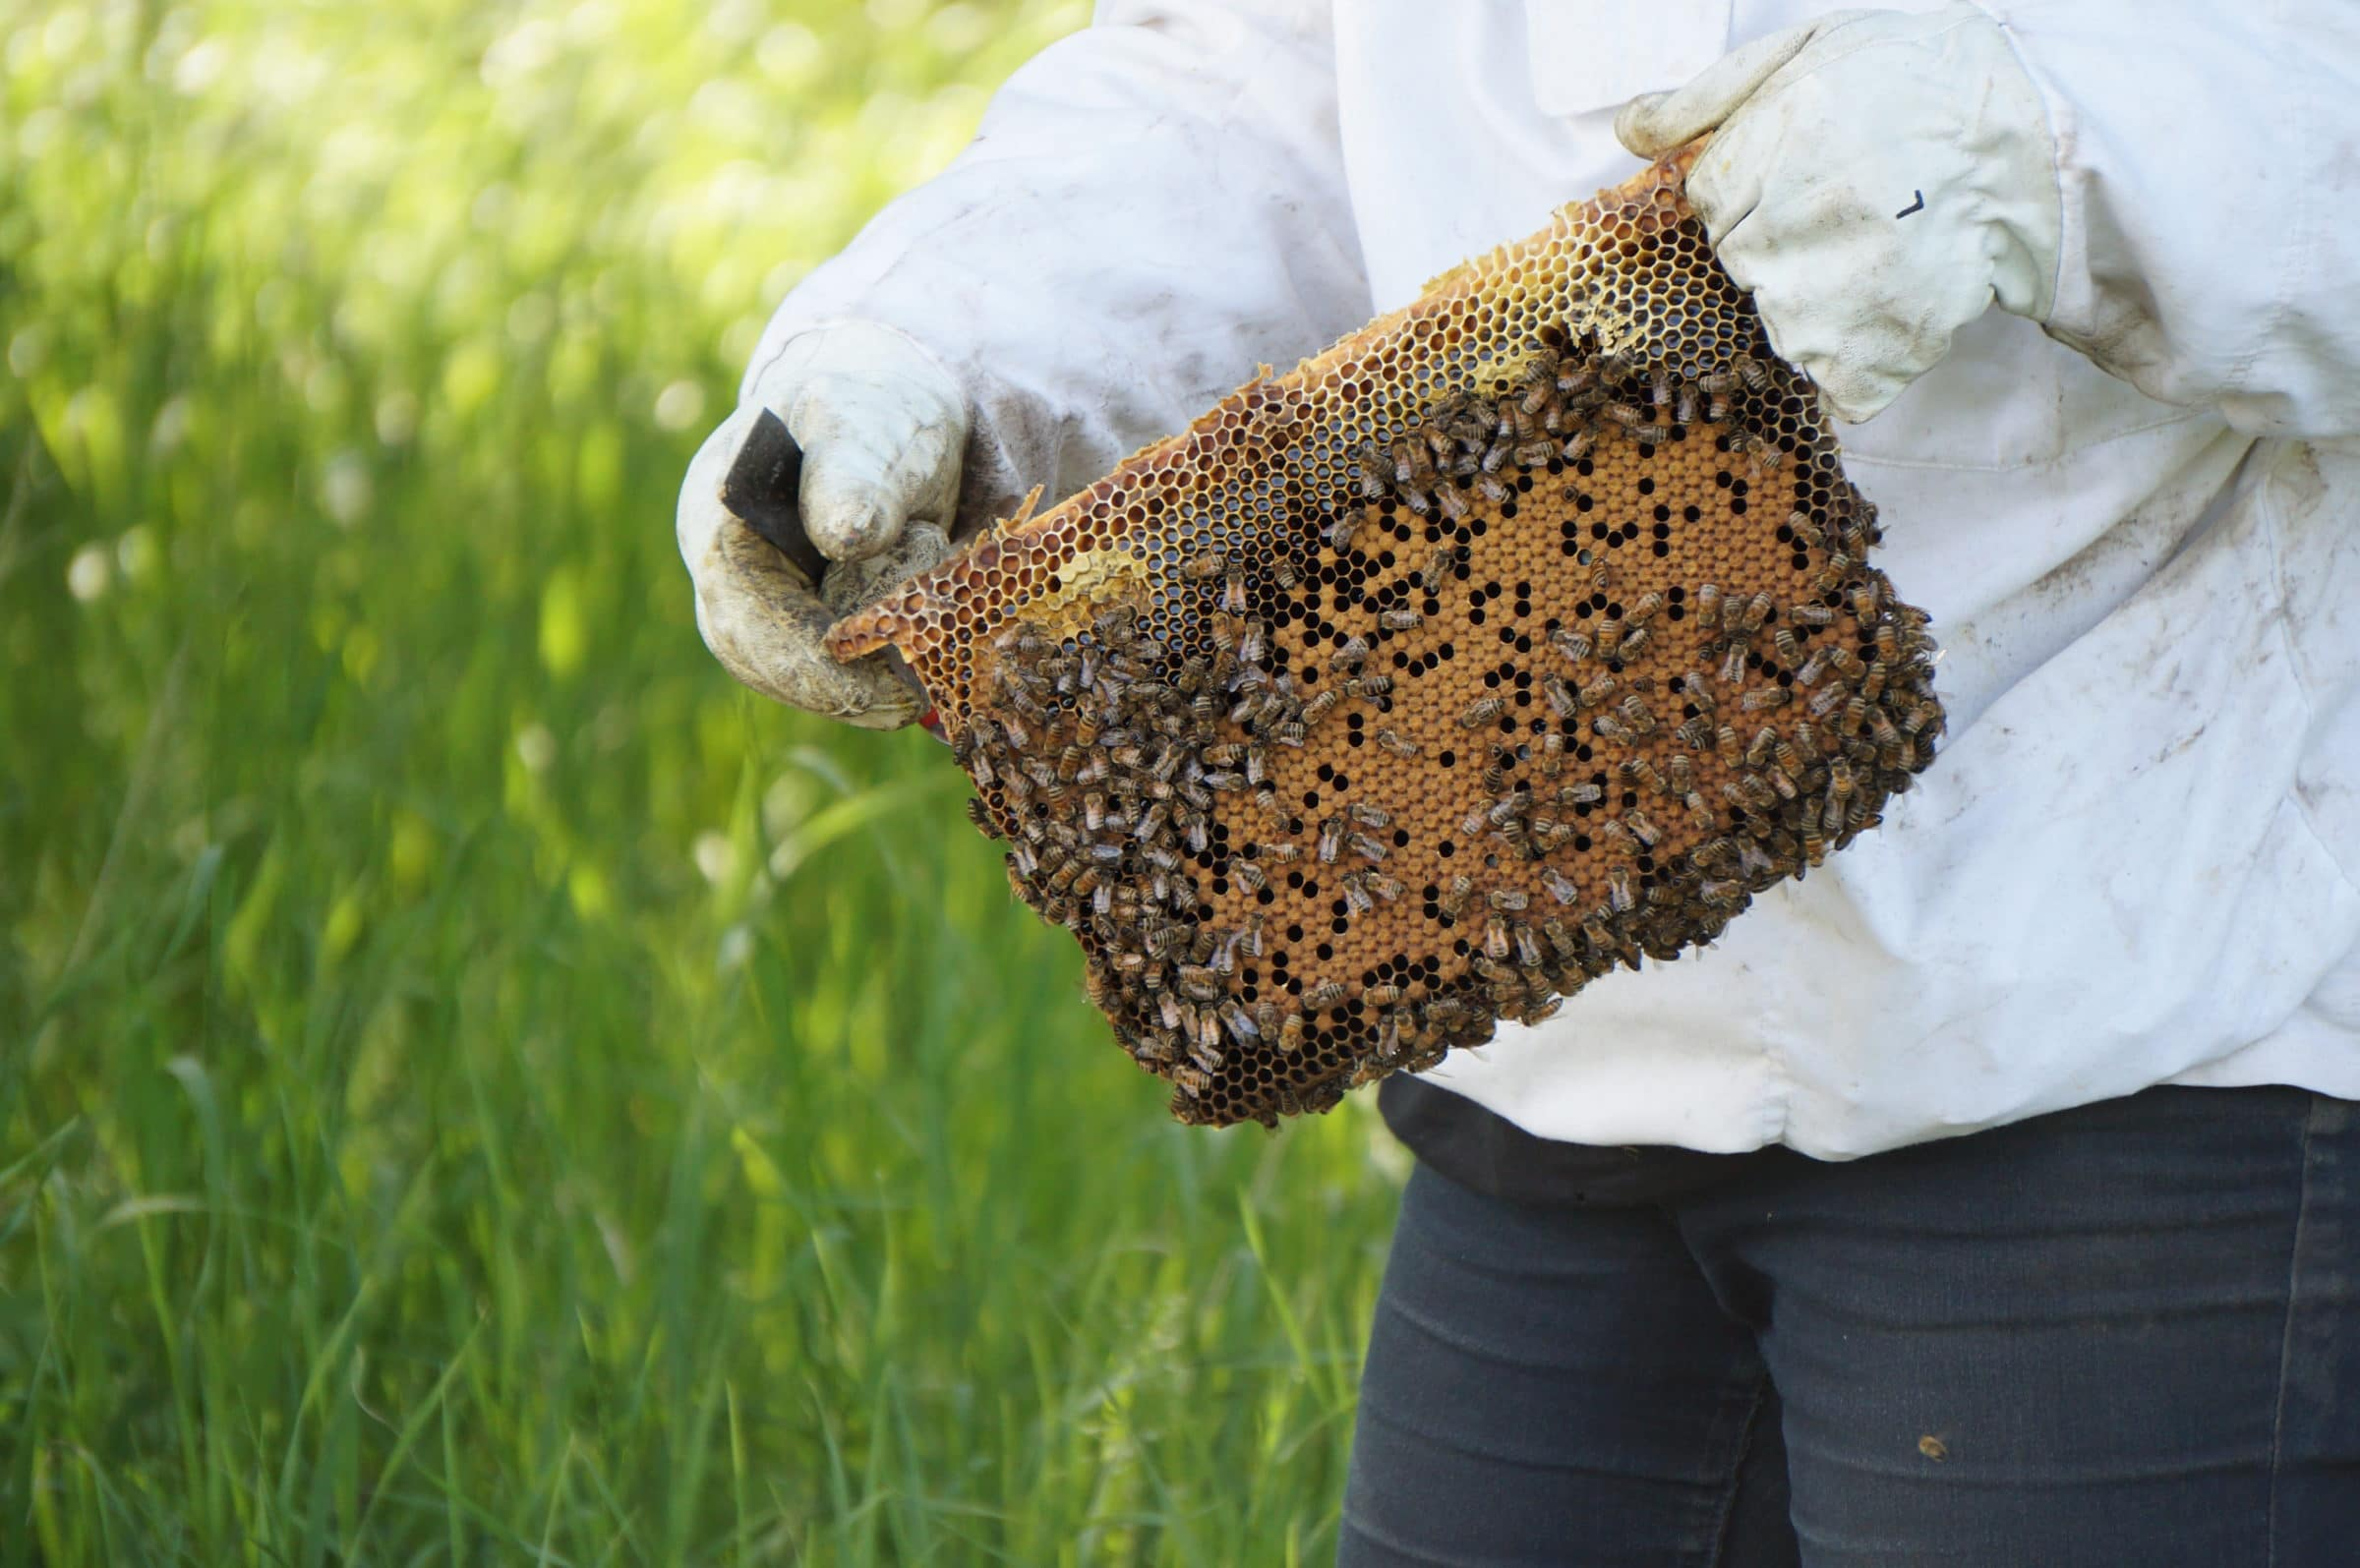 A beekeeper holds up an active beehive.